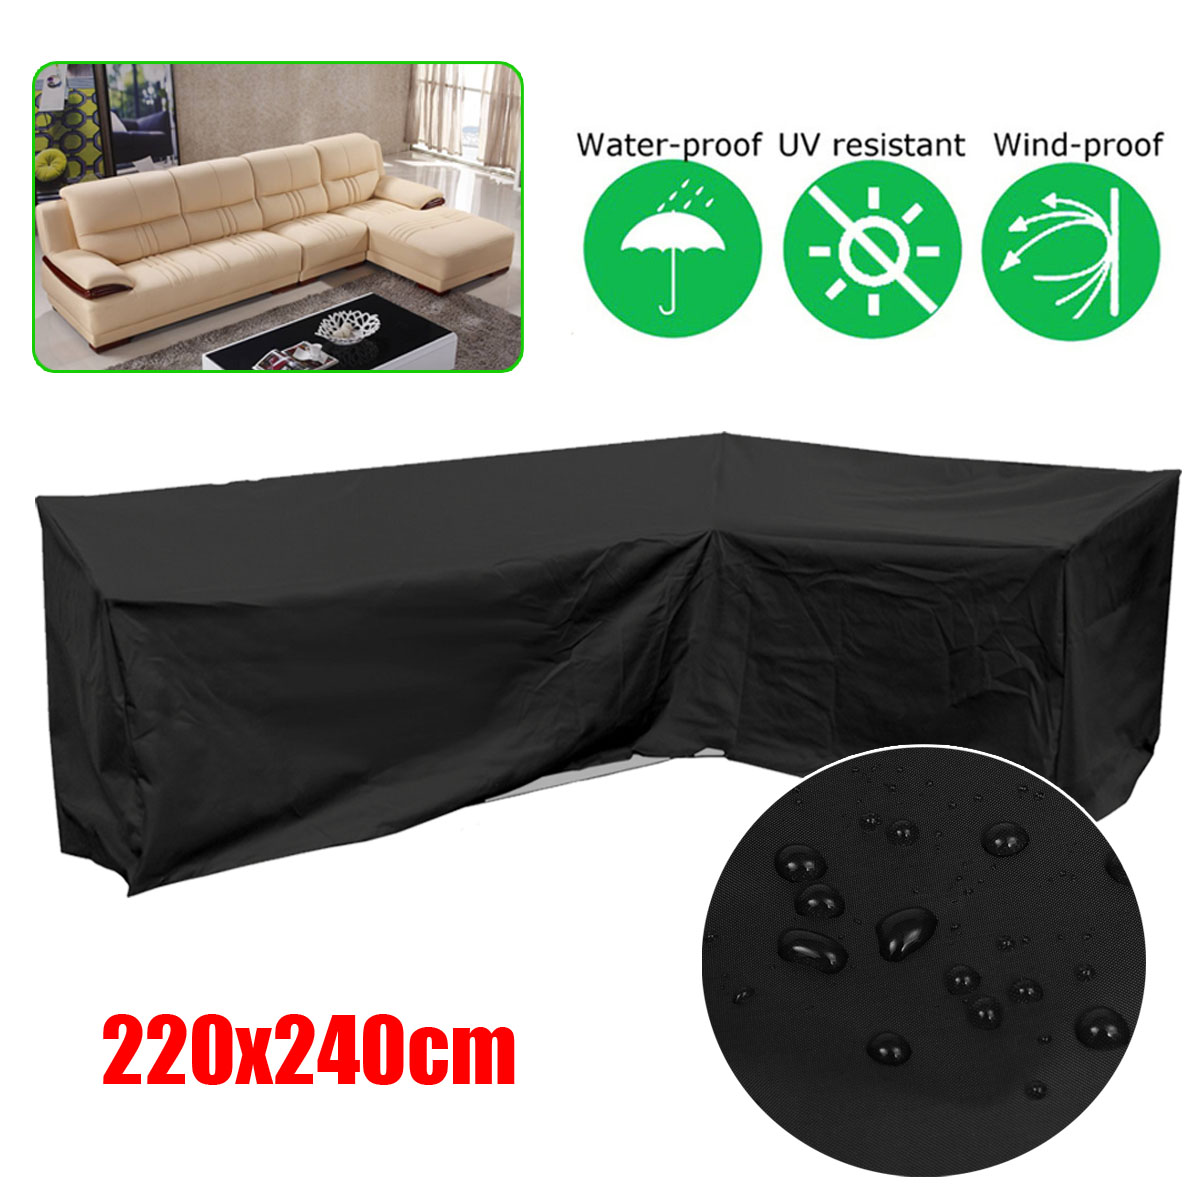 220x240cm L Shape Corner Sofa Couch Cover Waterproof Dustproof Covers for Outdoor Furniture Protection Black/Green/Silver220x240cm L Shape Corner Sofa Couch Cover Waterproof Dustproof Covers for Outdoor Furniture Protection Black/Green/Silver